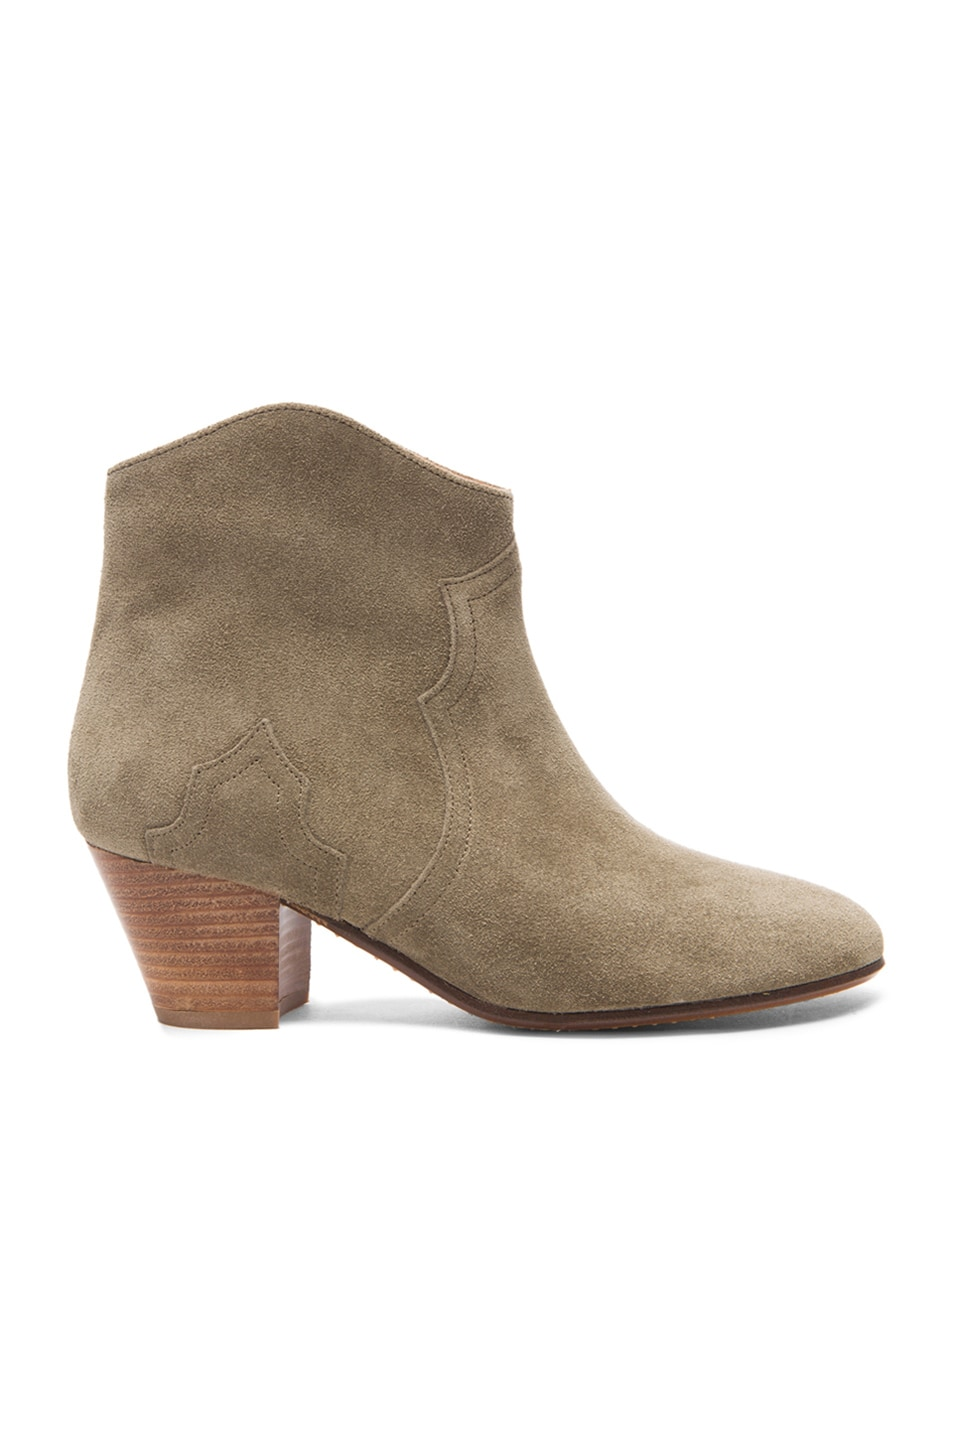 Image 1 of Isabel Marant Dicker Calfskin Velvet Booties in Taupe